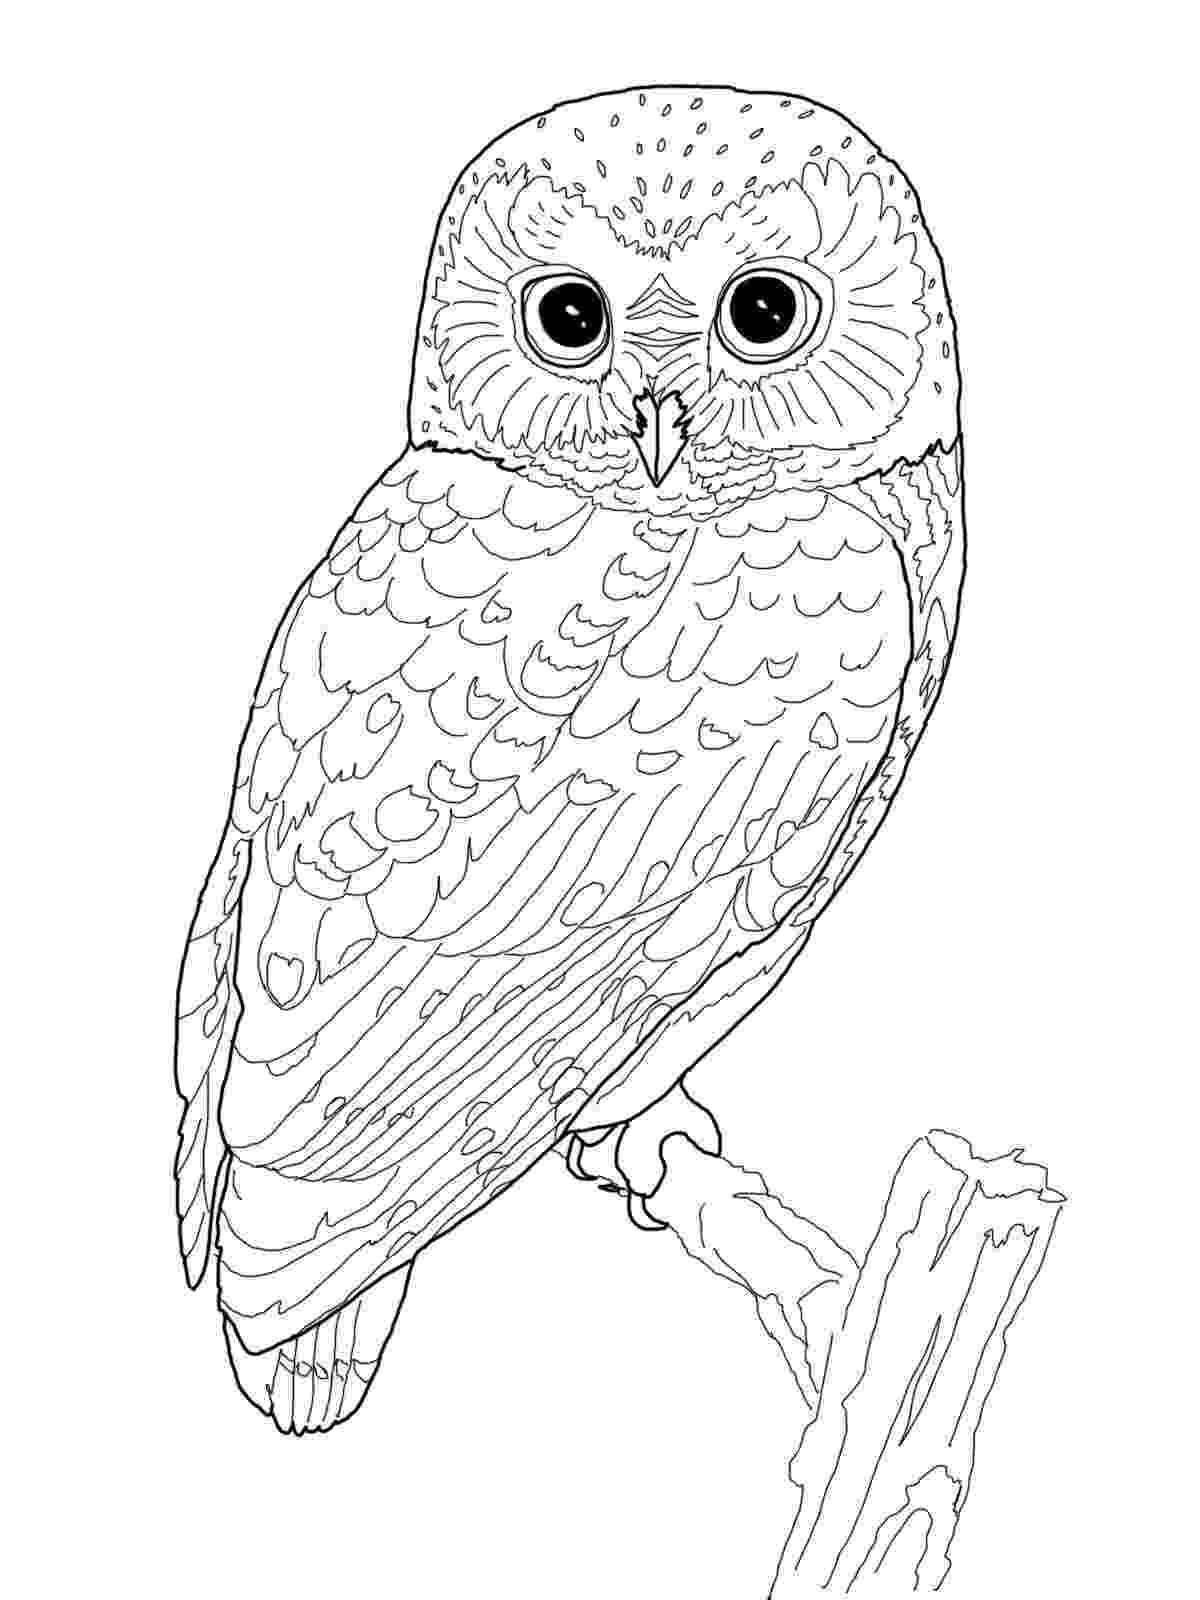 owl coloring sheet owl coloring pages owl coloring pages sheet owl coloring